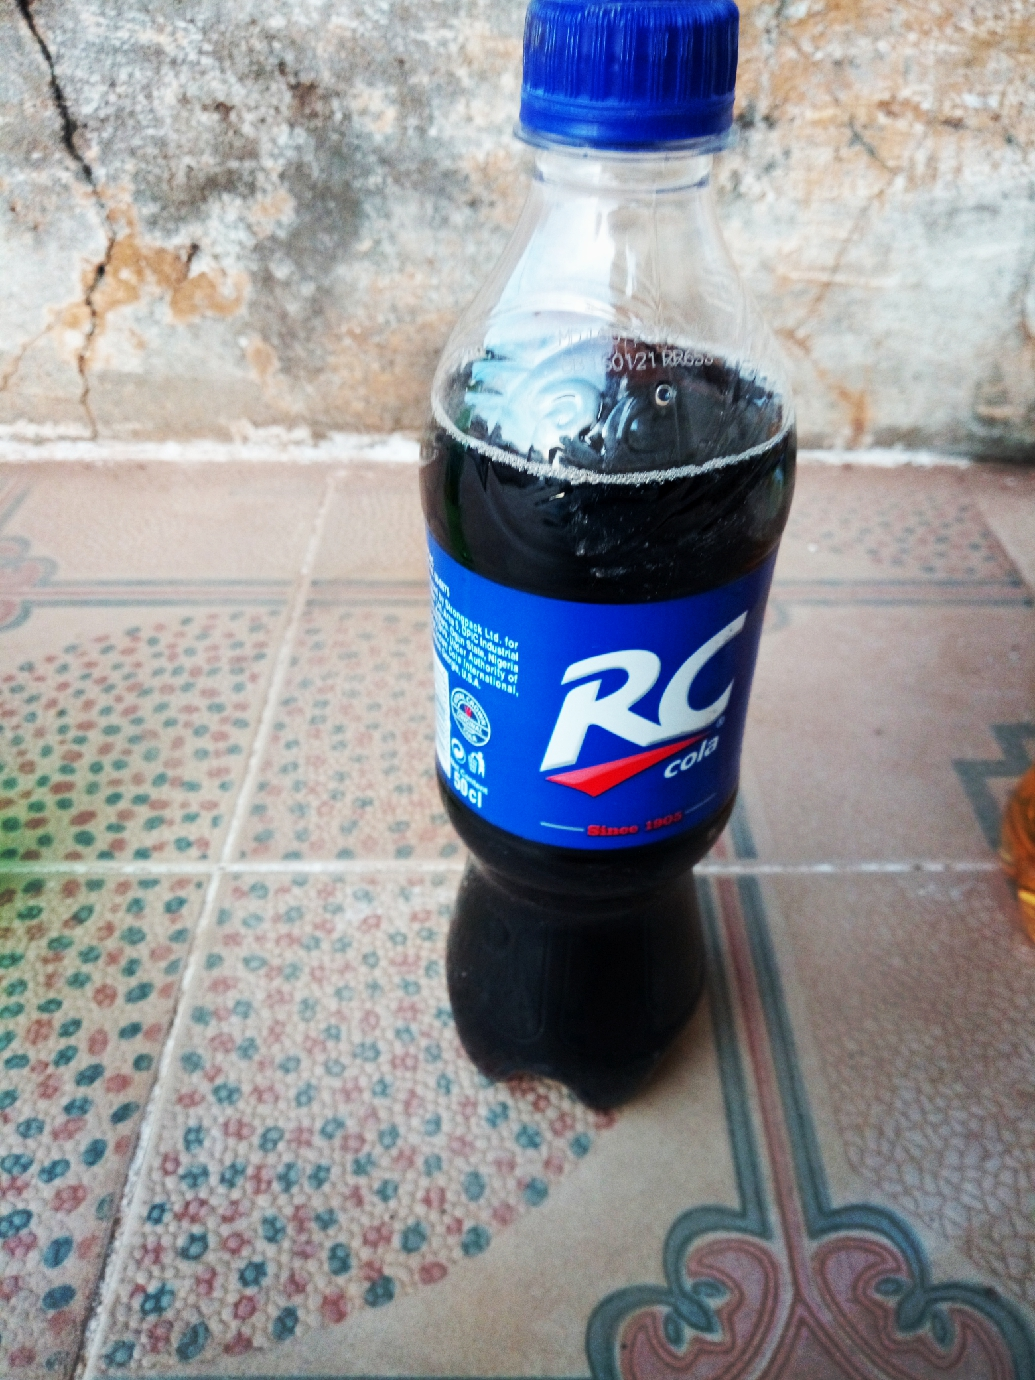 [Business] Royal crown (RC) Drinks are the summary to Soft drinks in Nigeria - here is why #Arewapublisize